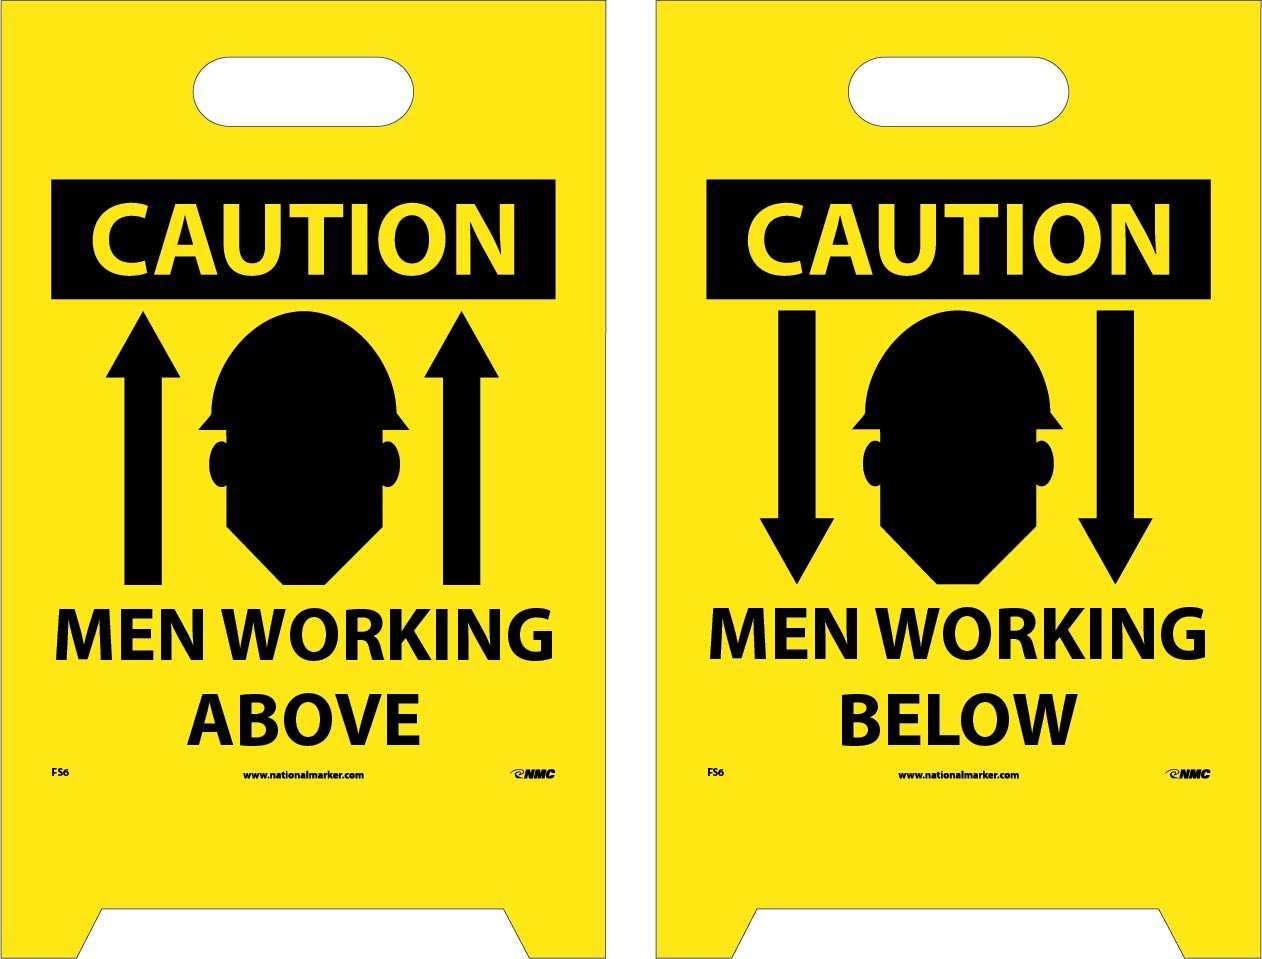 NMC FS6 Double Sided Floor Sign, ''CAUTION MEN WORKING ABOVE - MEN WORKING BELOW'', 12'' Width x 20'' Height, Corrugated Polyethylene, Black on Yellow